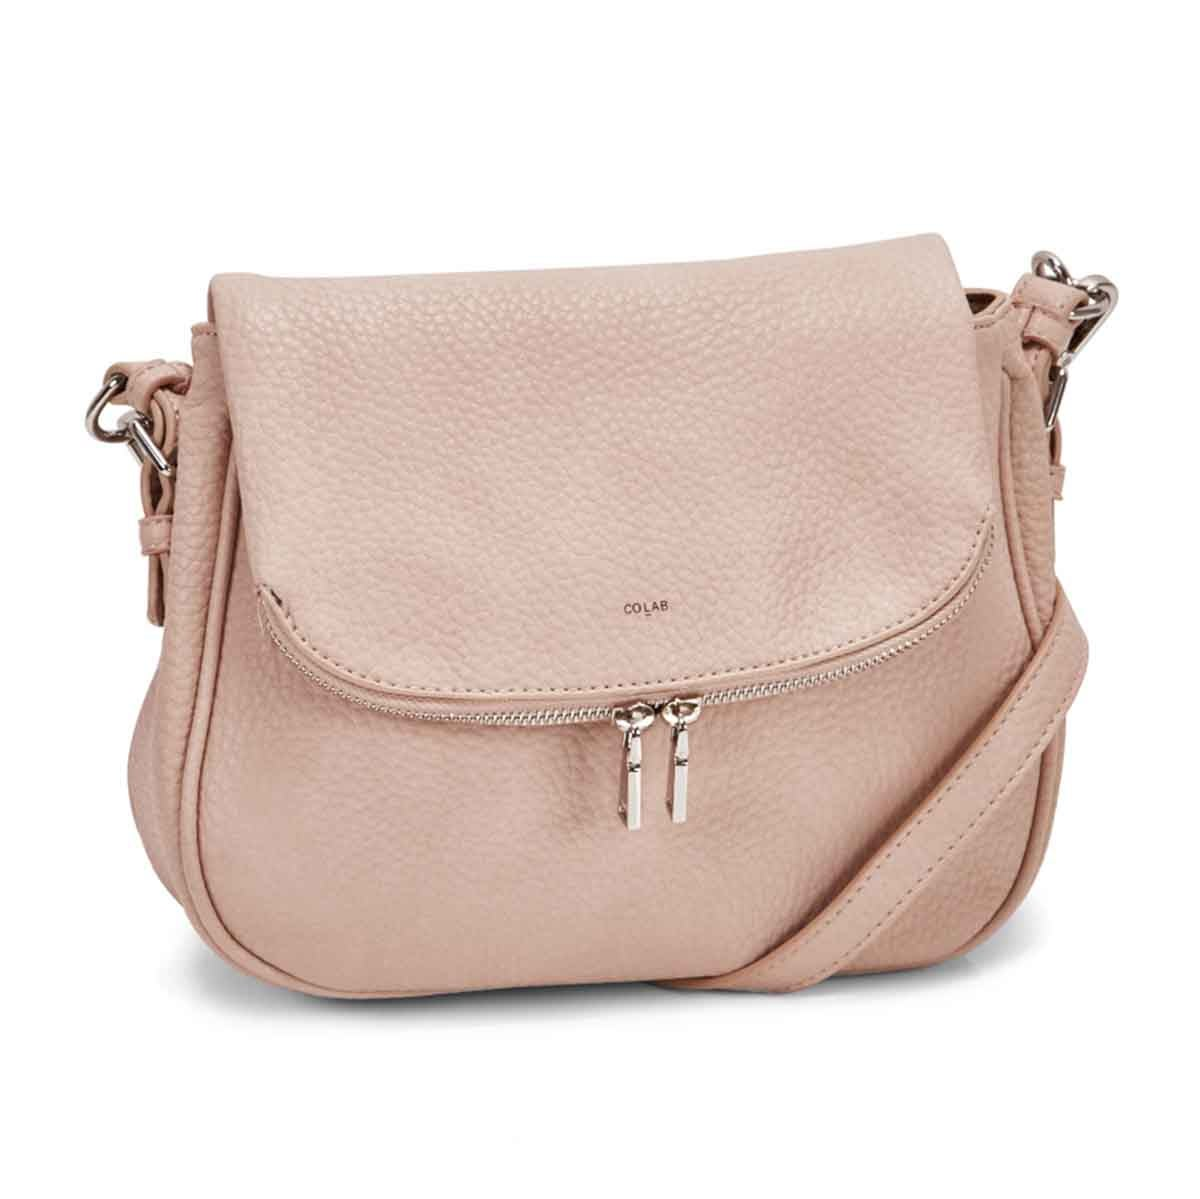 Women's SYDNEY blush cross body bag